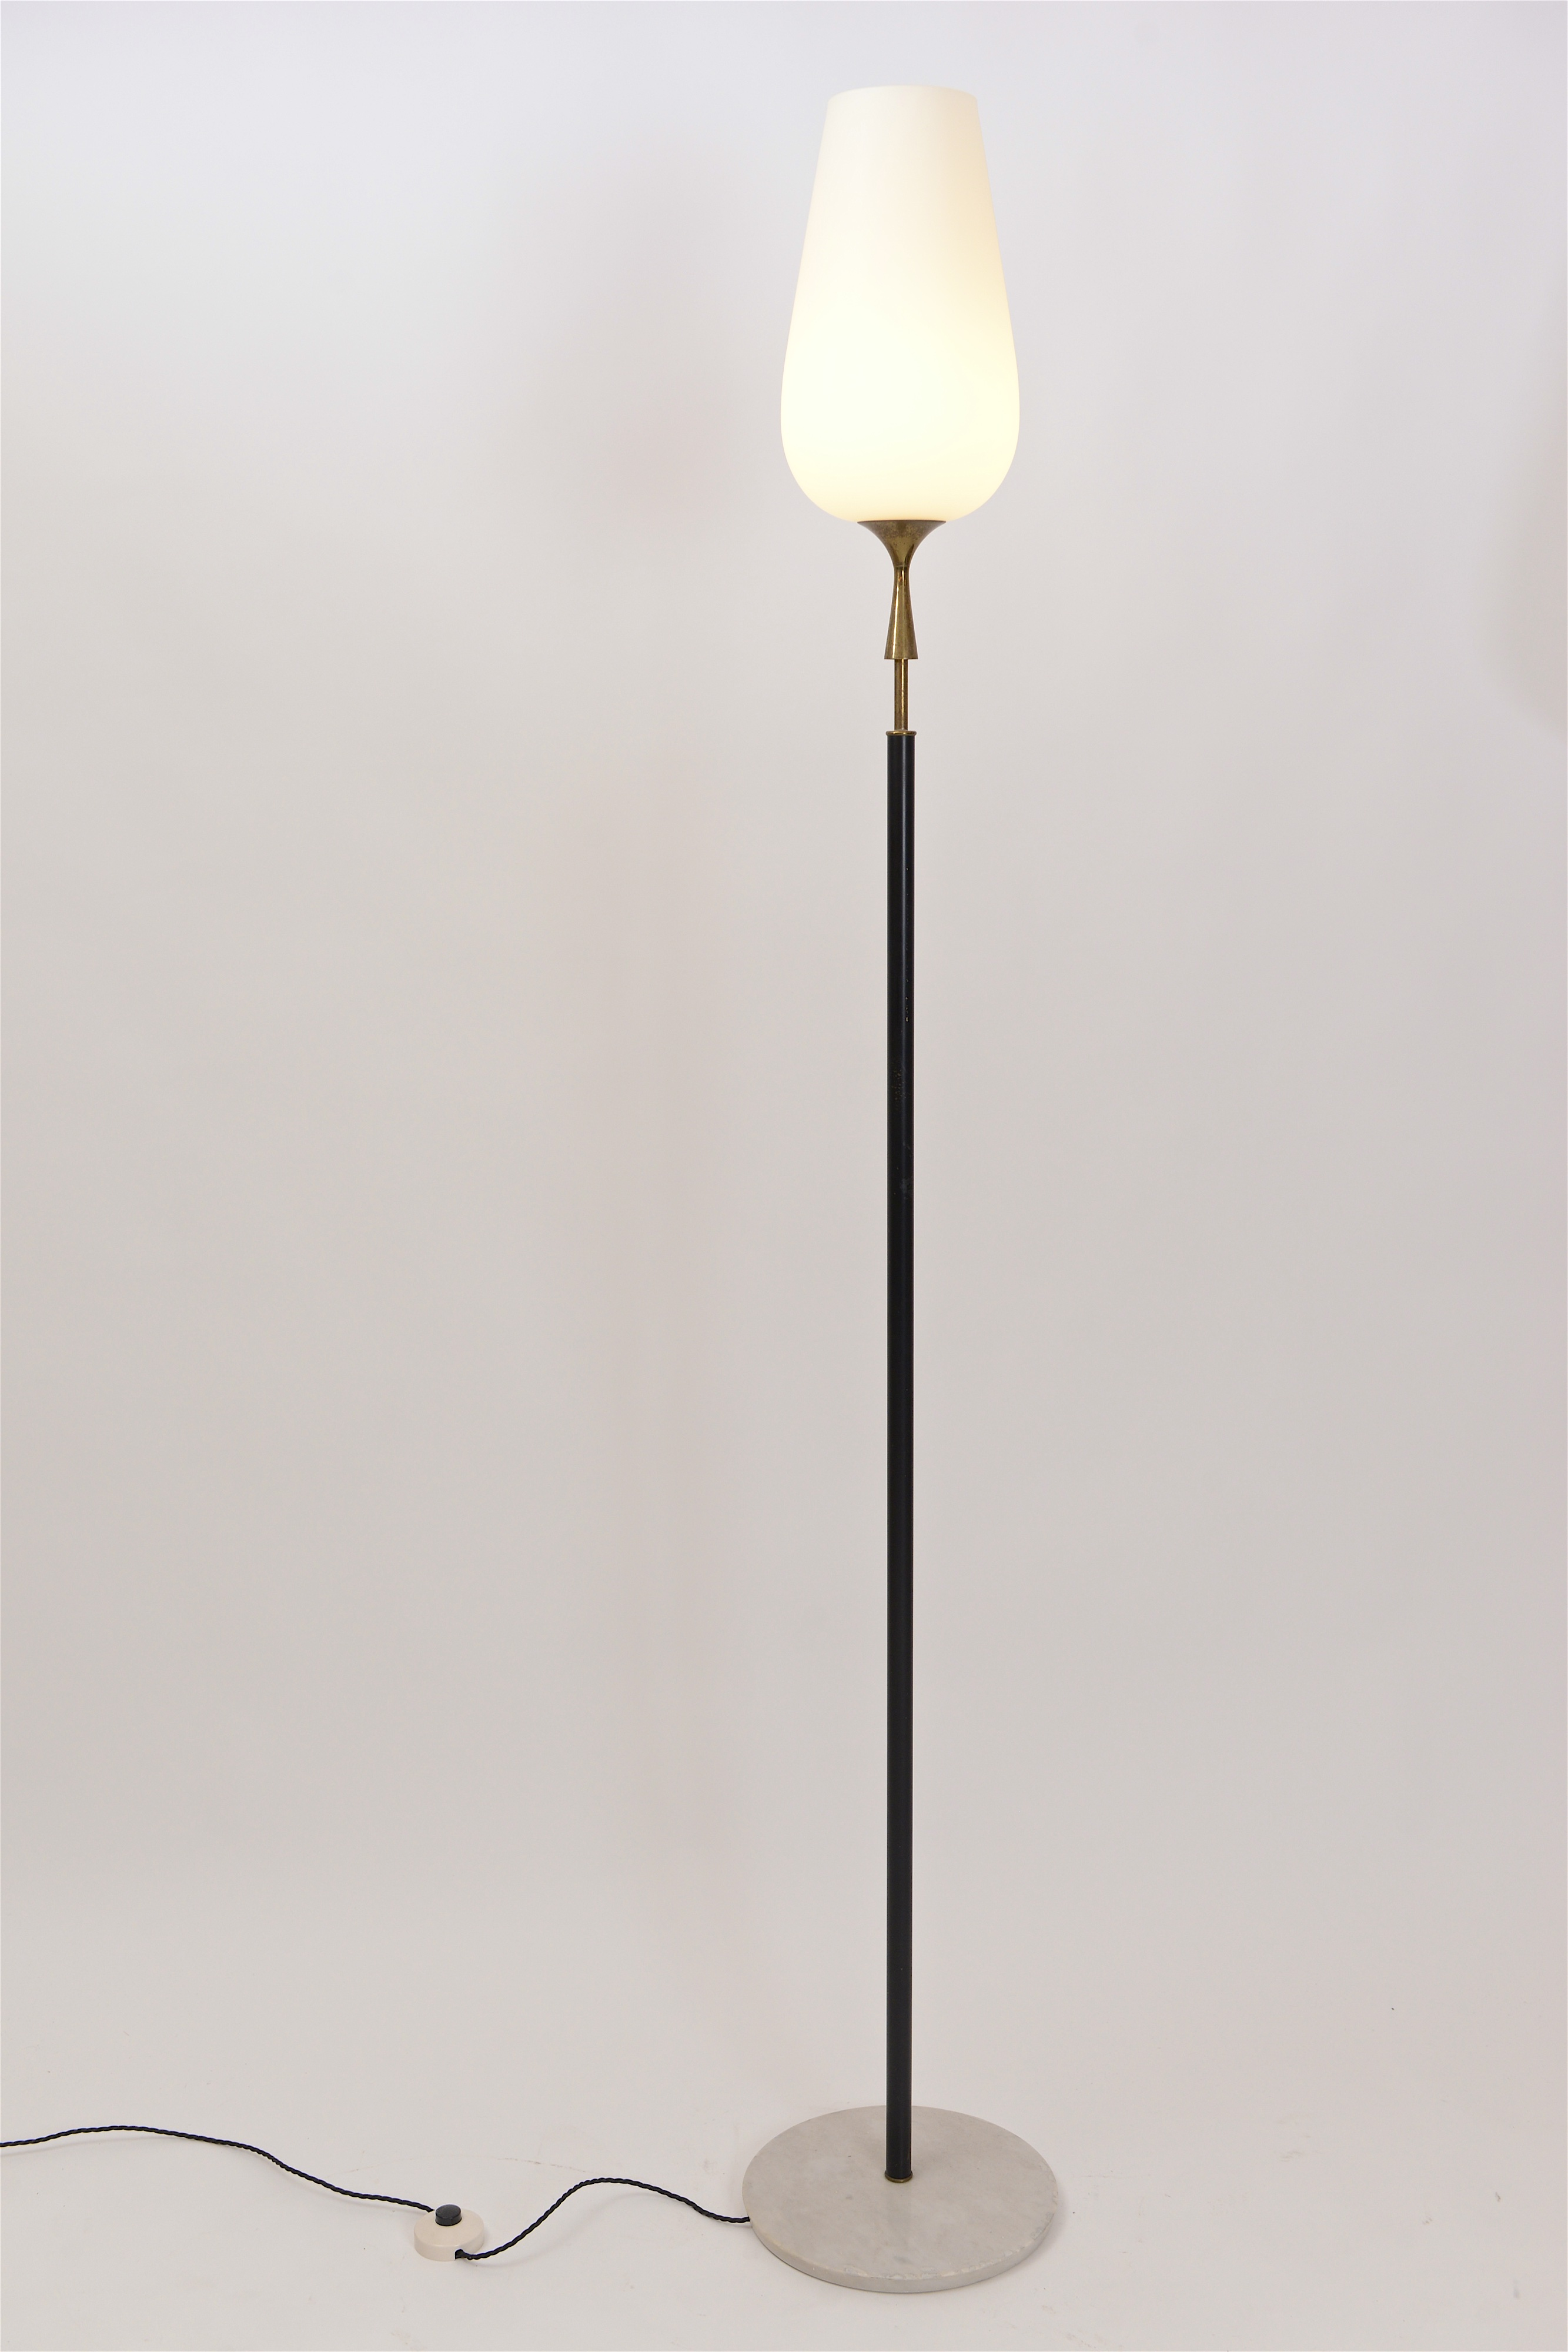 Opaline glass floor lamp by Arredoluce